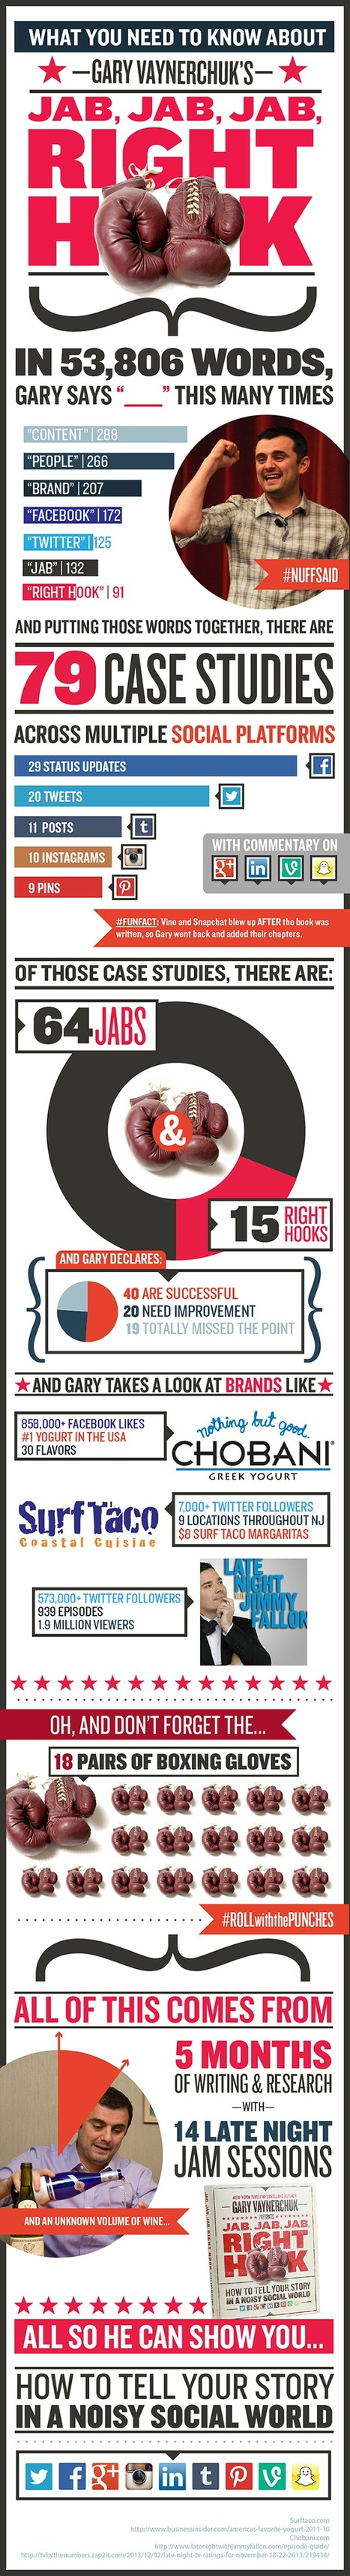 What You Need to Know About Jab, Jab, Jab, Right Hook by Gary Vaynerchuk [Infographic] | brand influencers social media marketing | Scoop.it